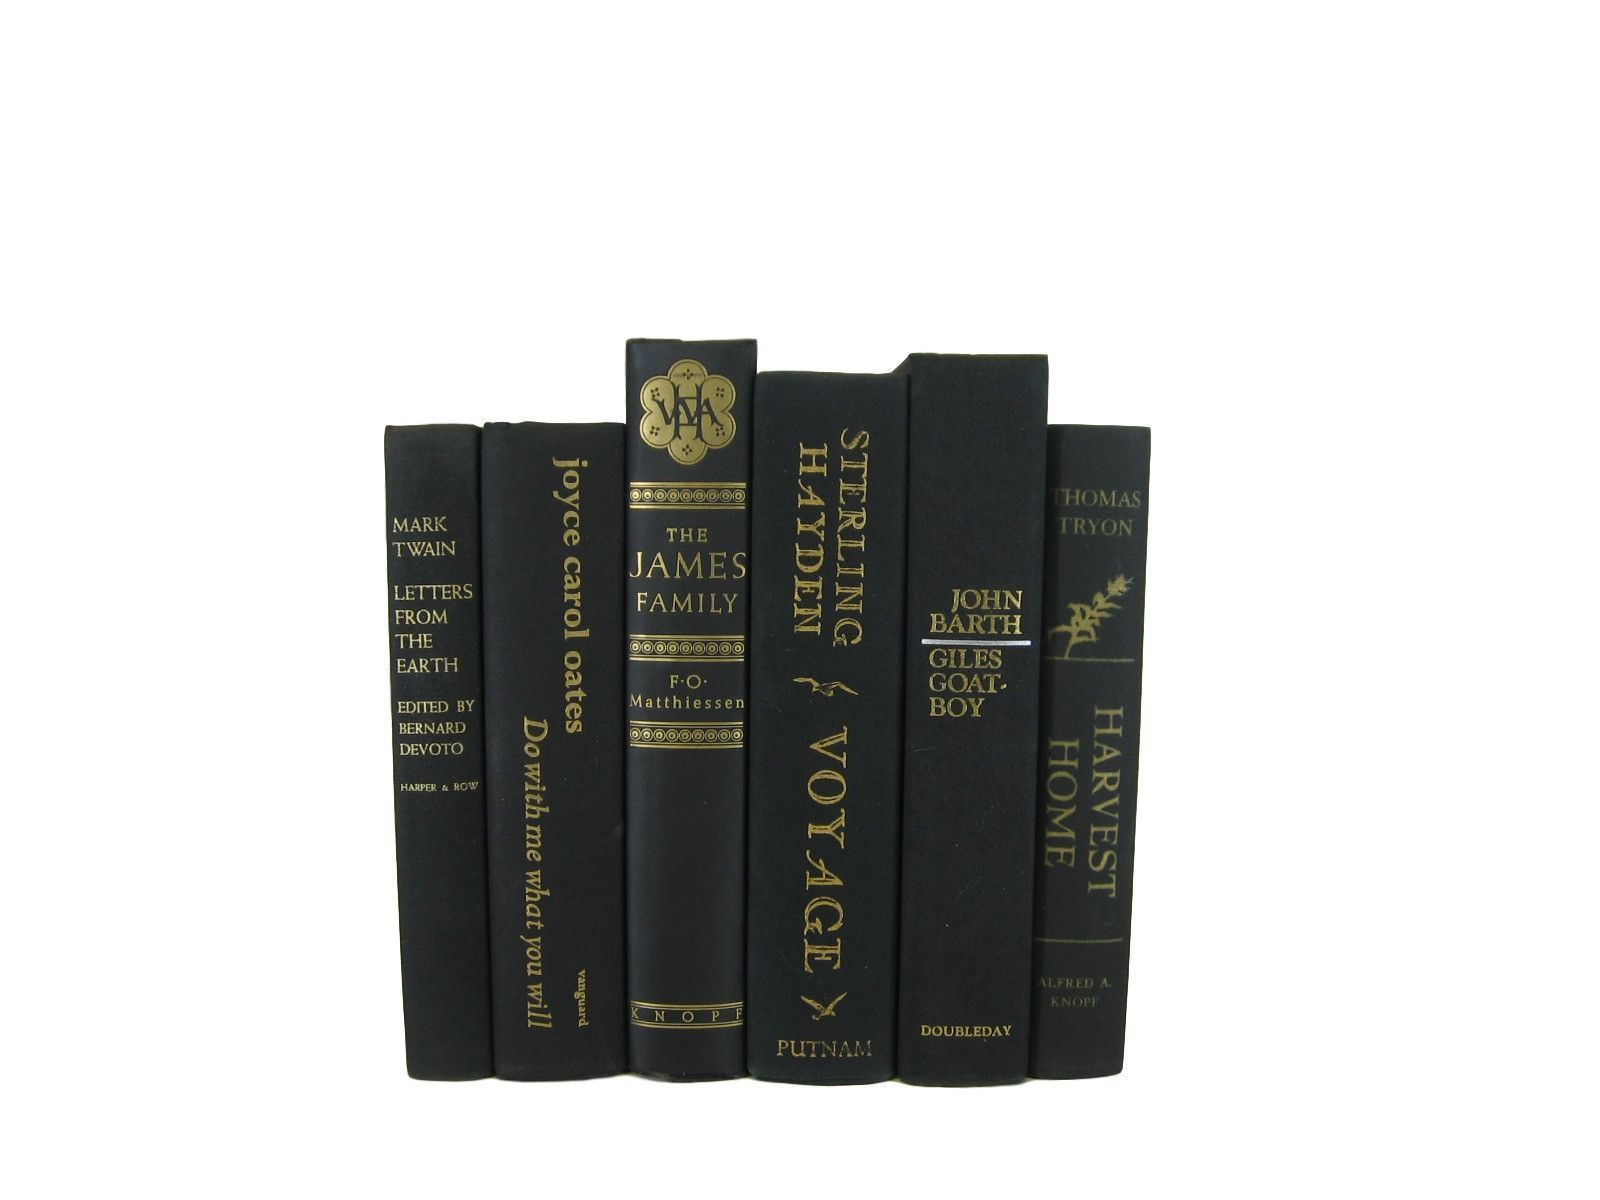 Black Decorative Hardcover Books, S/6  #DecadesofVintage #vintagehomedecor #bookshelfdecor #vintagebookdecor #oldbooks #decorativebooks #interiordesign #stagingprop #homedecor #booksbycolor